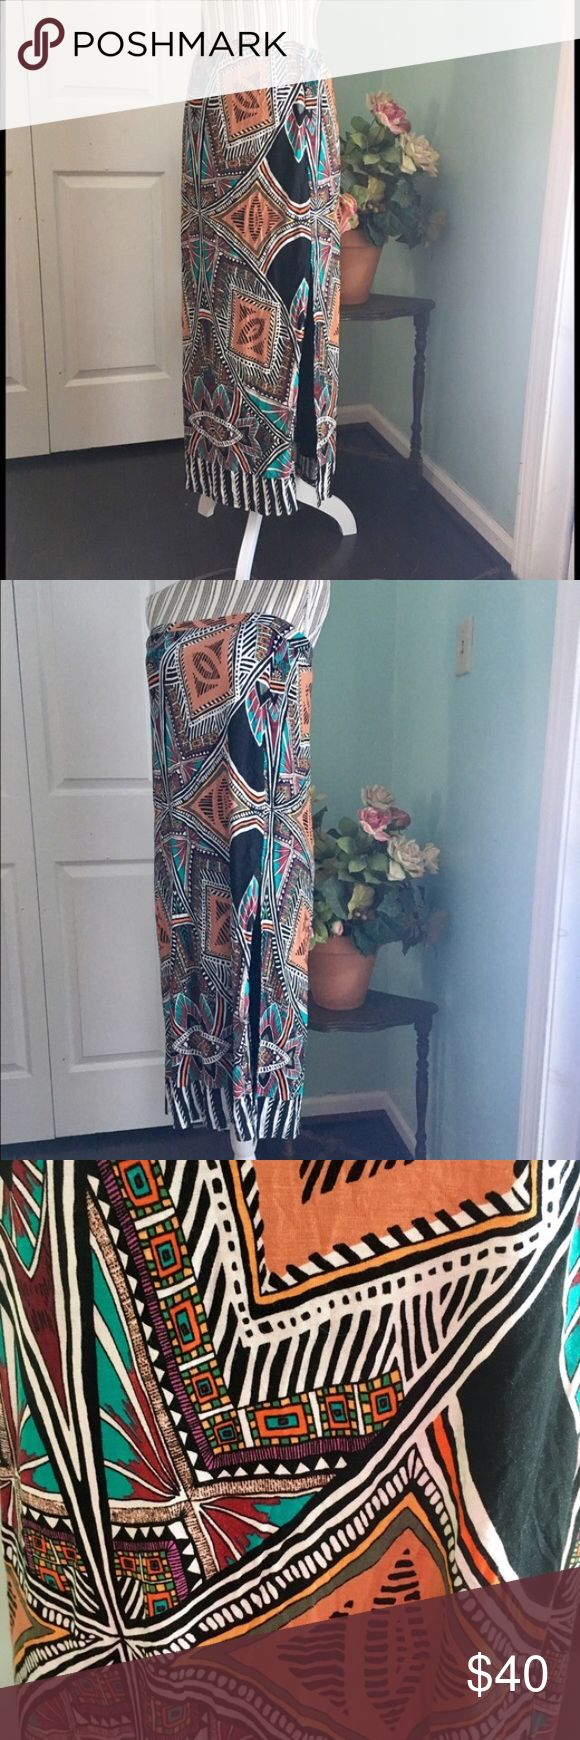 NWT ANTHROPOLOGIE Maeve Tribal Maxi Skirt This Anthropologie skirt can easily be used as a strapless dress as shown. Tribal print.   Size S, measures approximately 36 inches long and has an elastic waist that measures 13.5 inches unstretched.   Side front slit. Fully lined.   NWT. Never worn. Bought at Anthropologie. Anthropologie Skirts Maxi